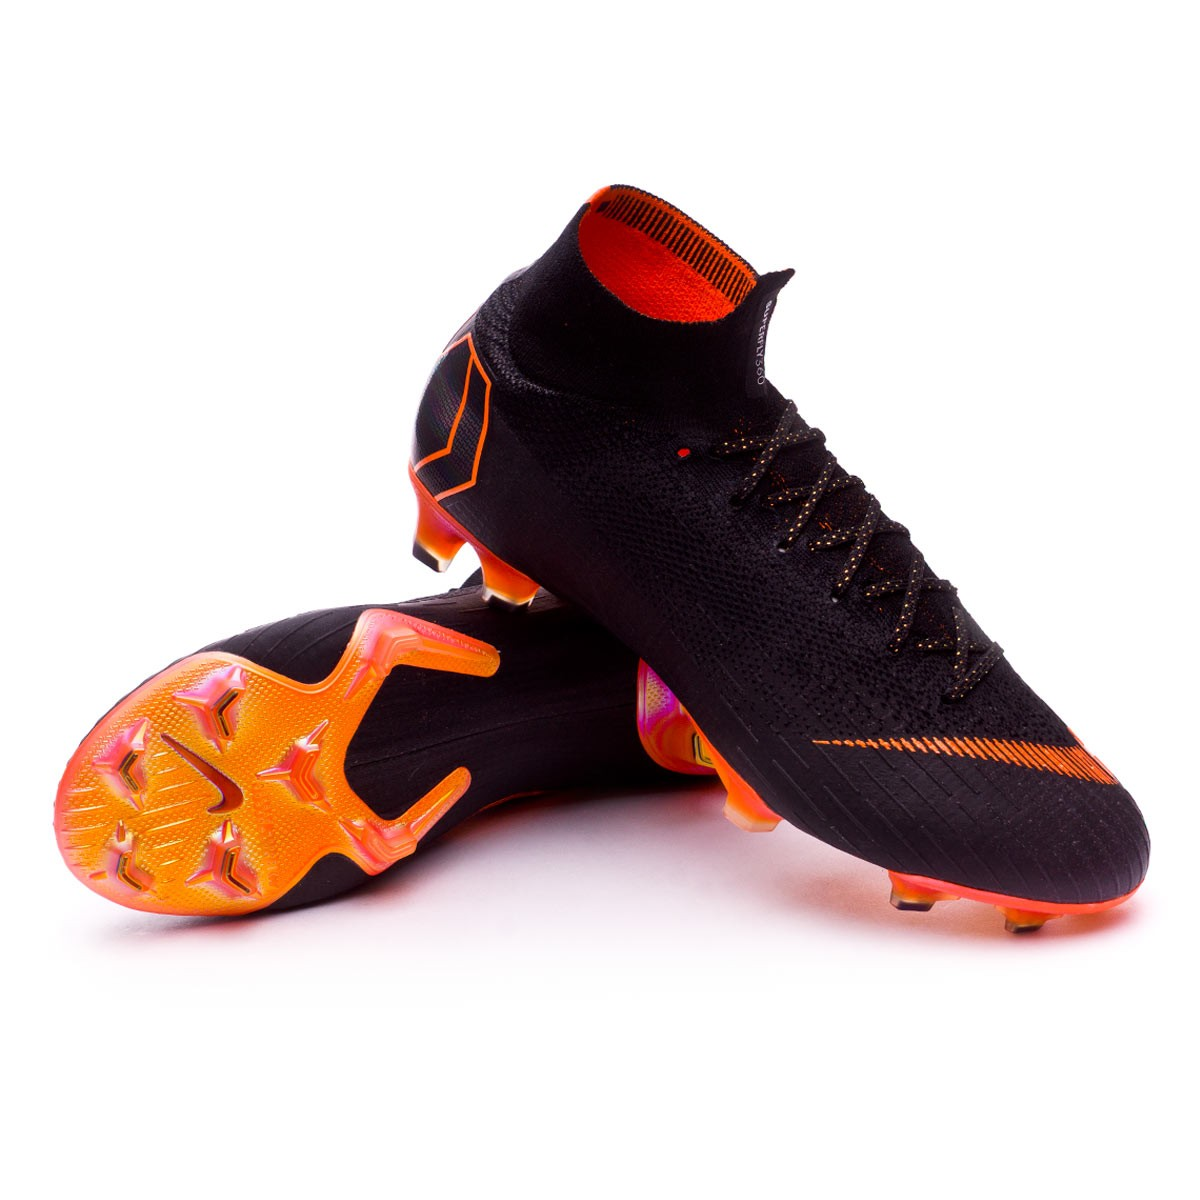 buy online f6d0c 11176 Scarpe Nike Mercurial Superfly VI Elite FG Black-Total orange-White -  Negozio di calcio Fútbol Emotion